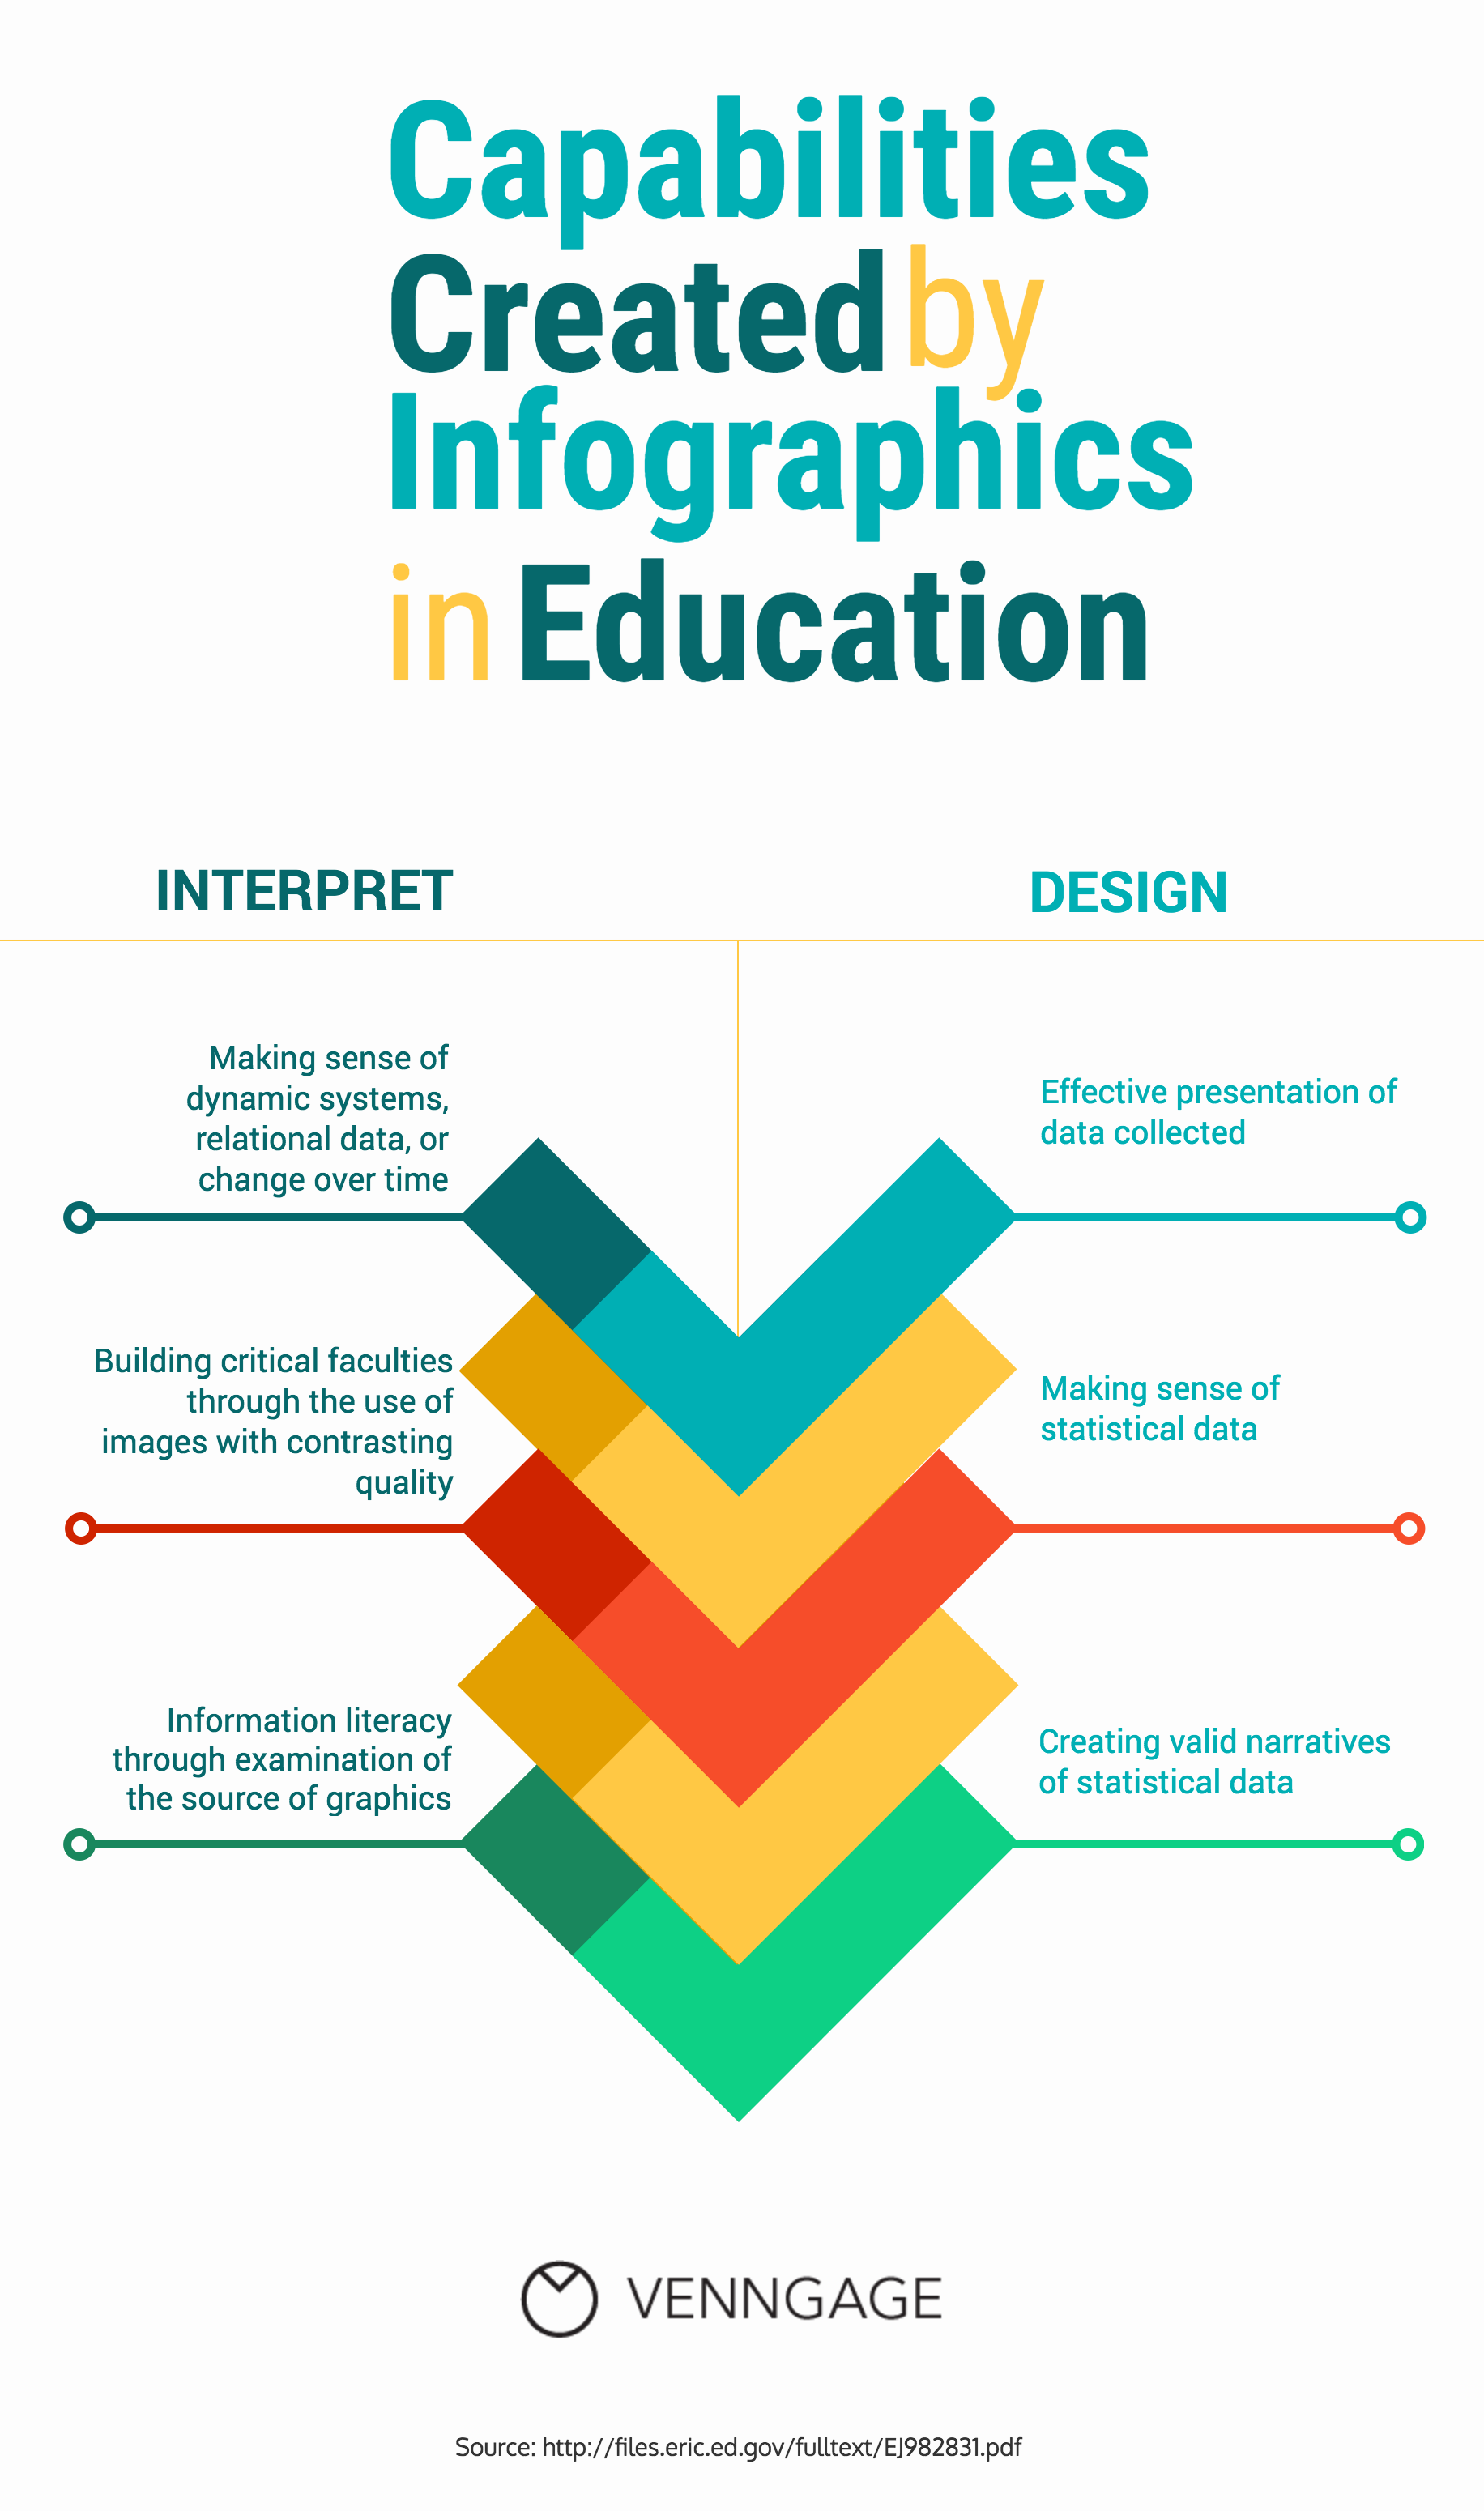 Why You Should Use Infographics In Your Elearning Course